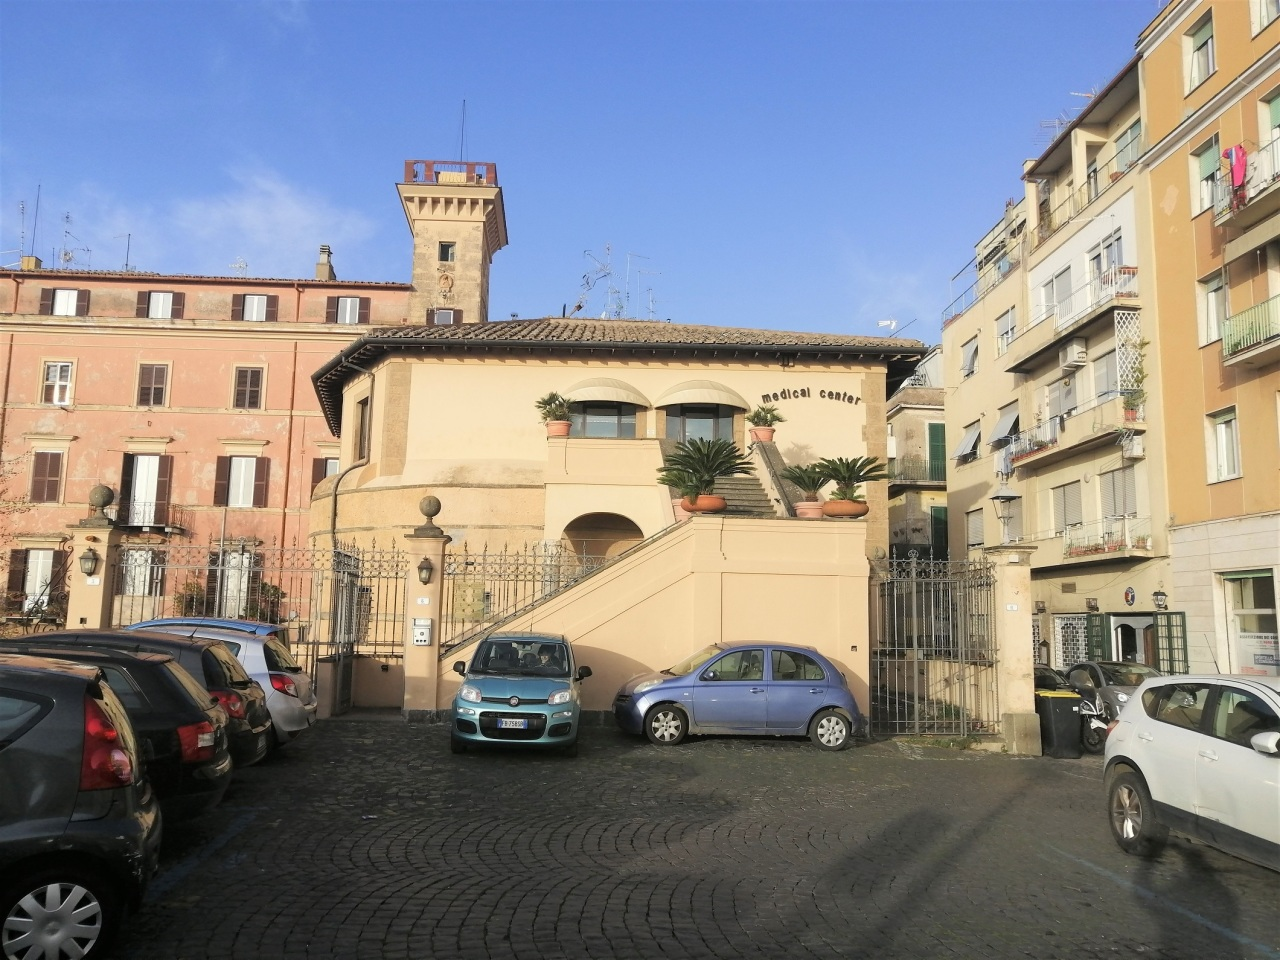 Locale commerciale a Frascati Rif. 12225135